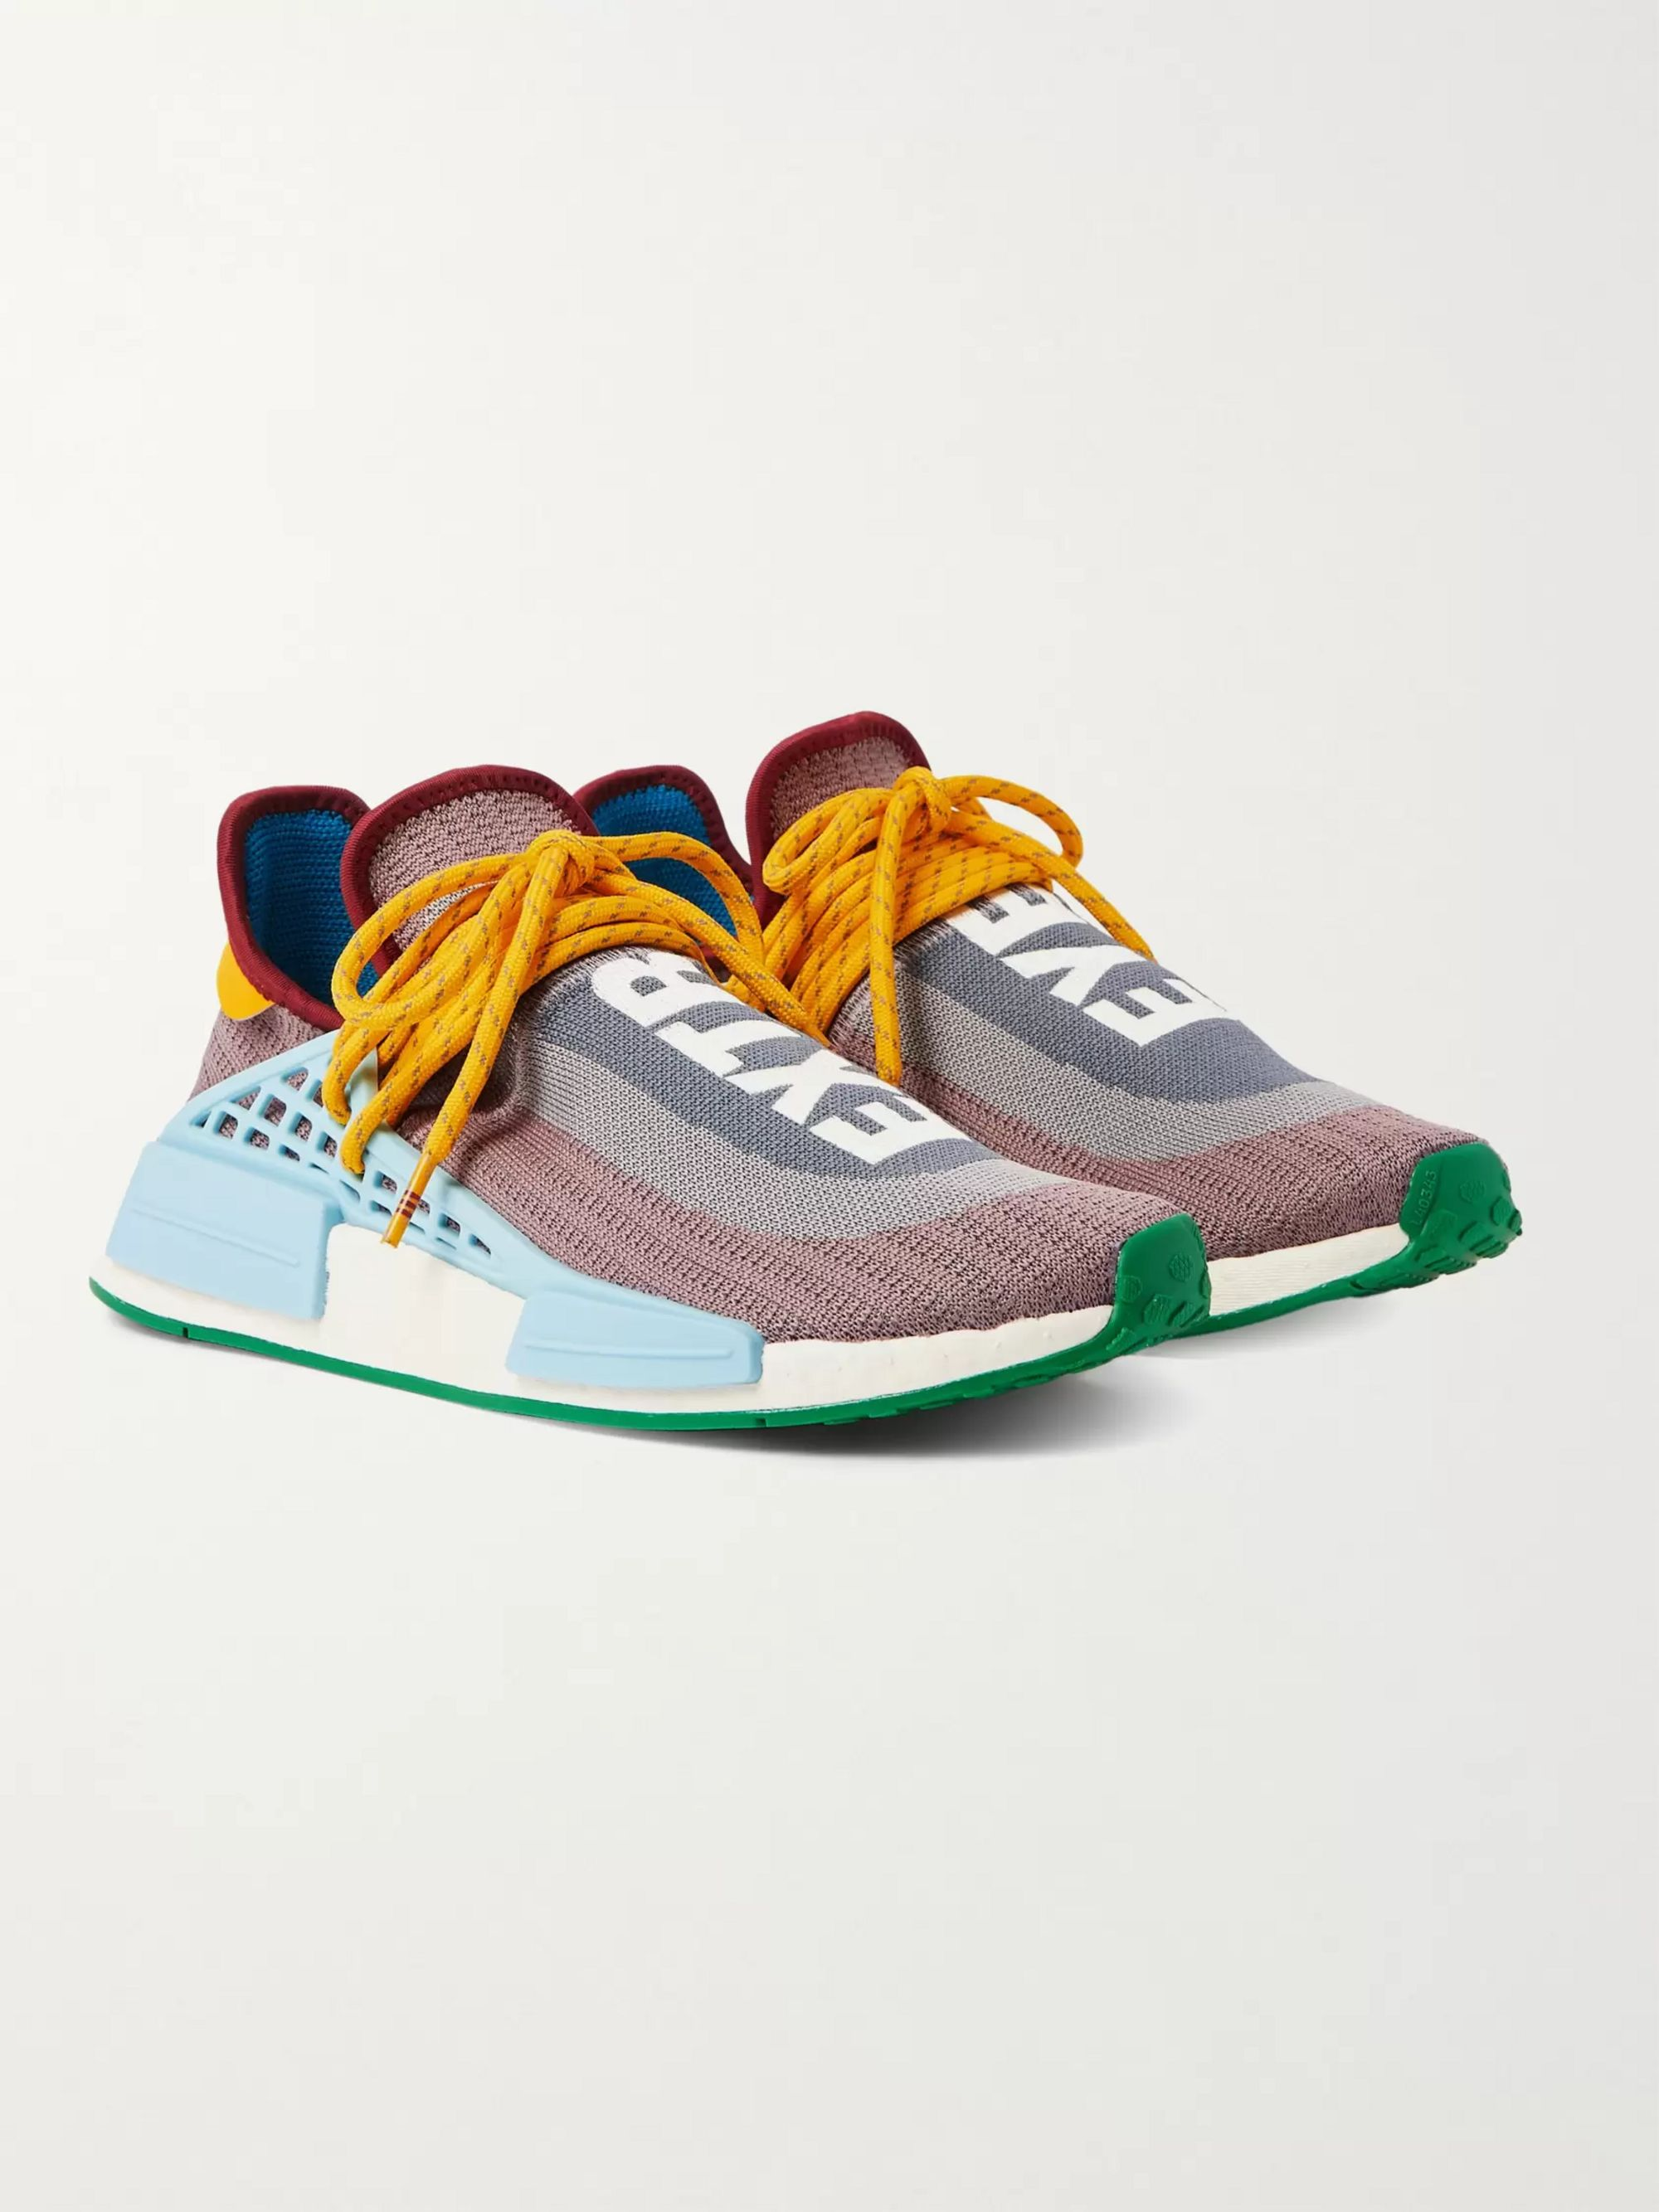 + Pharrell Williams NMD Hu Leather and Rubber Trimmed Primeknit Slip On Sneakers